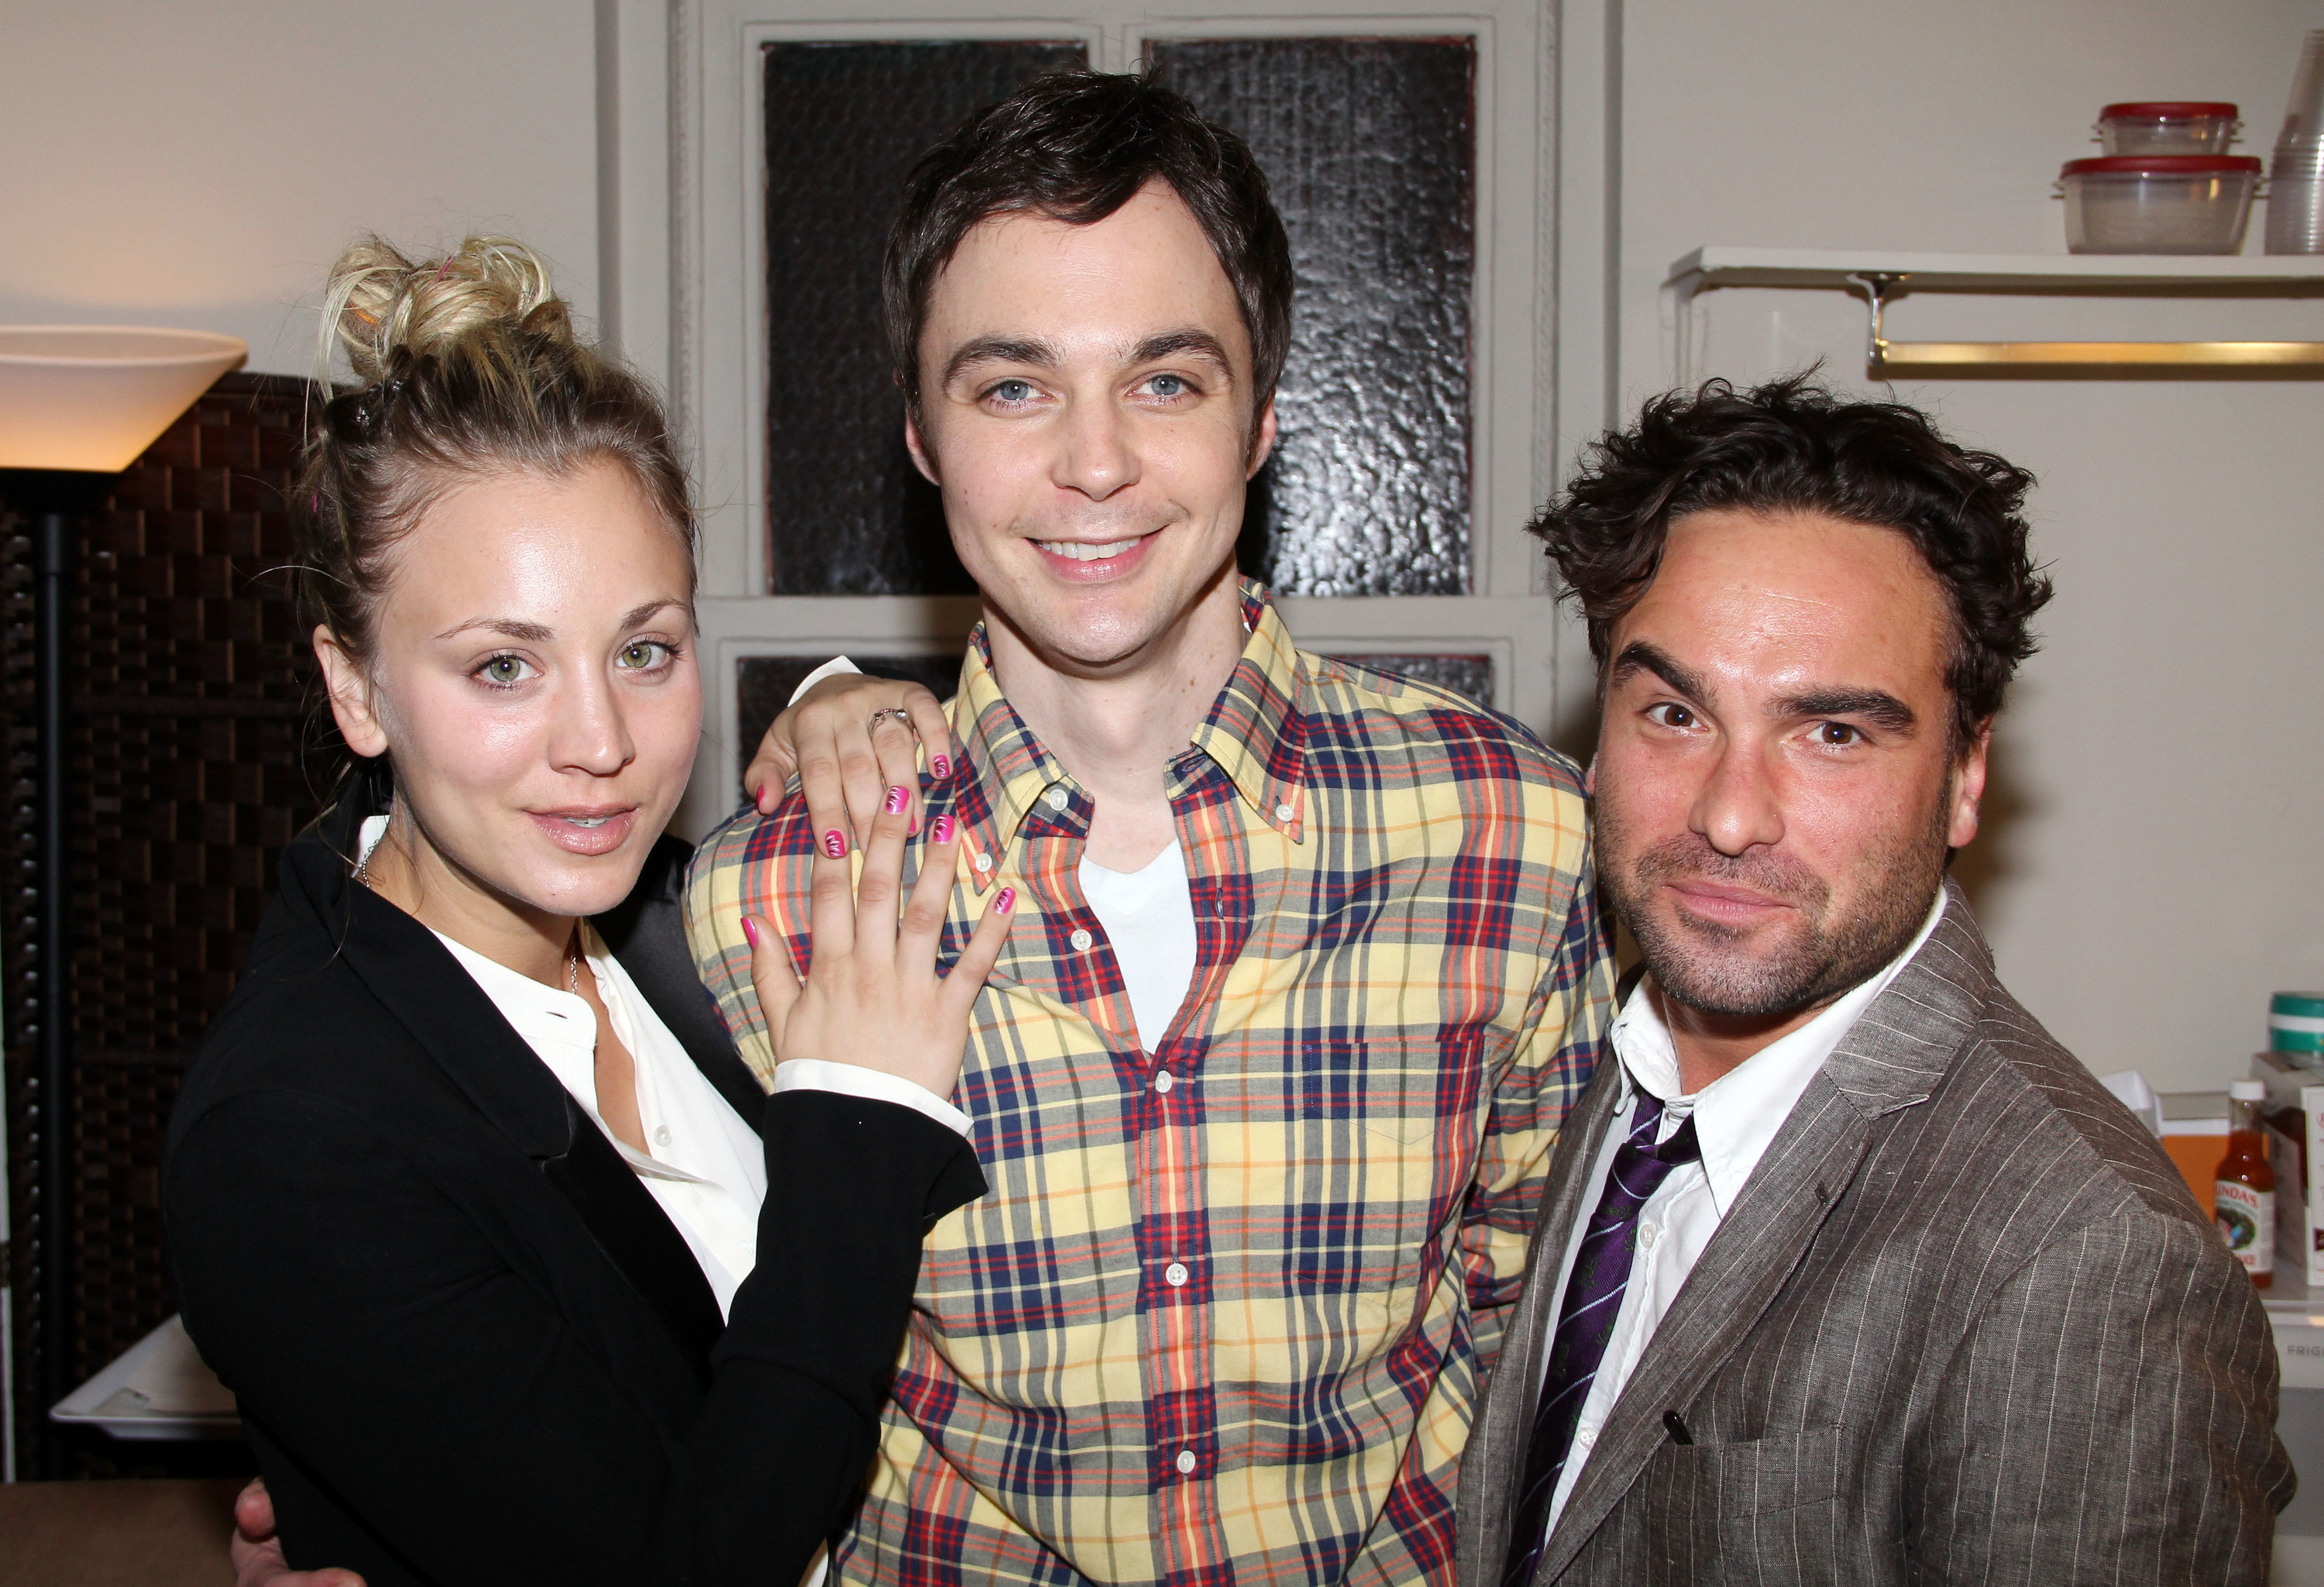 Kaley Cuoco, Jim Parsons, and Johnny Galecki in a kitchen